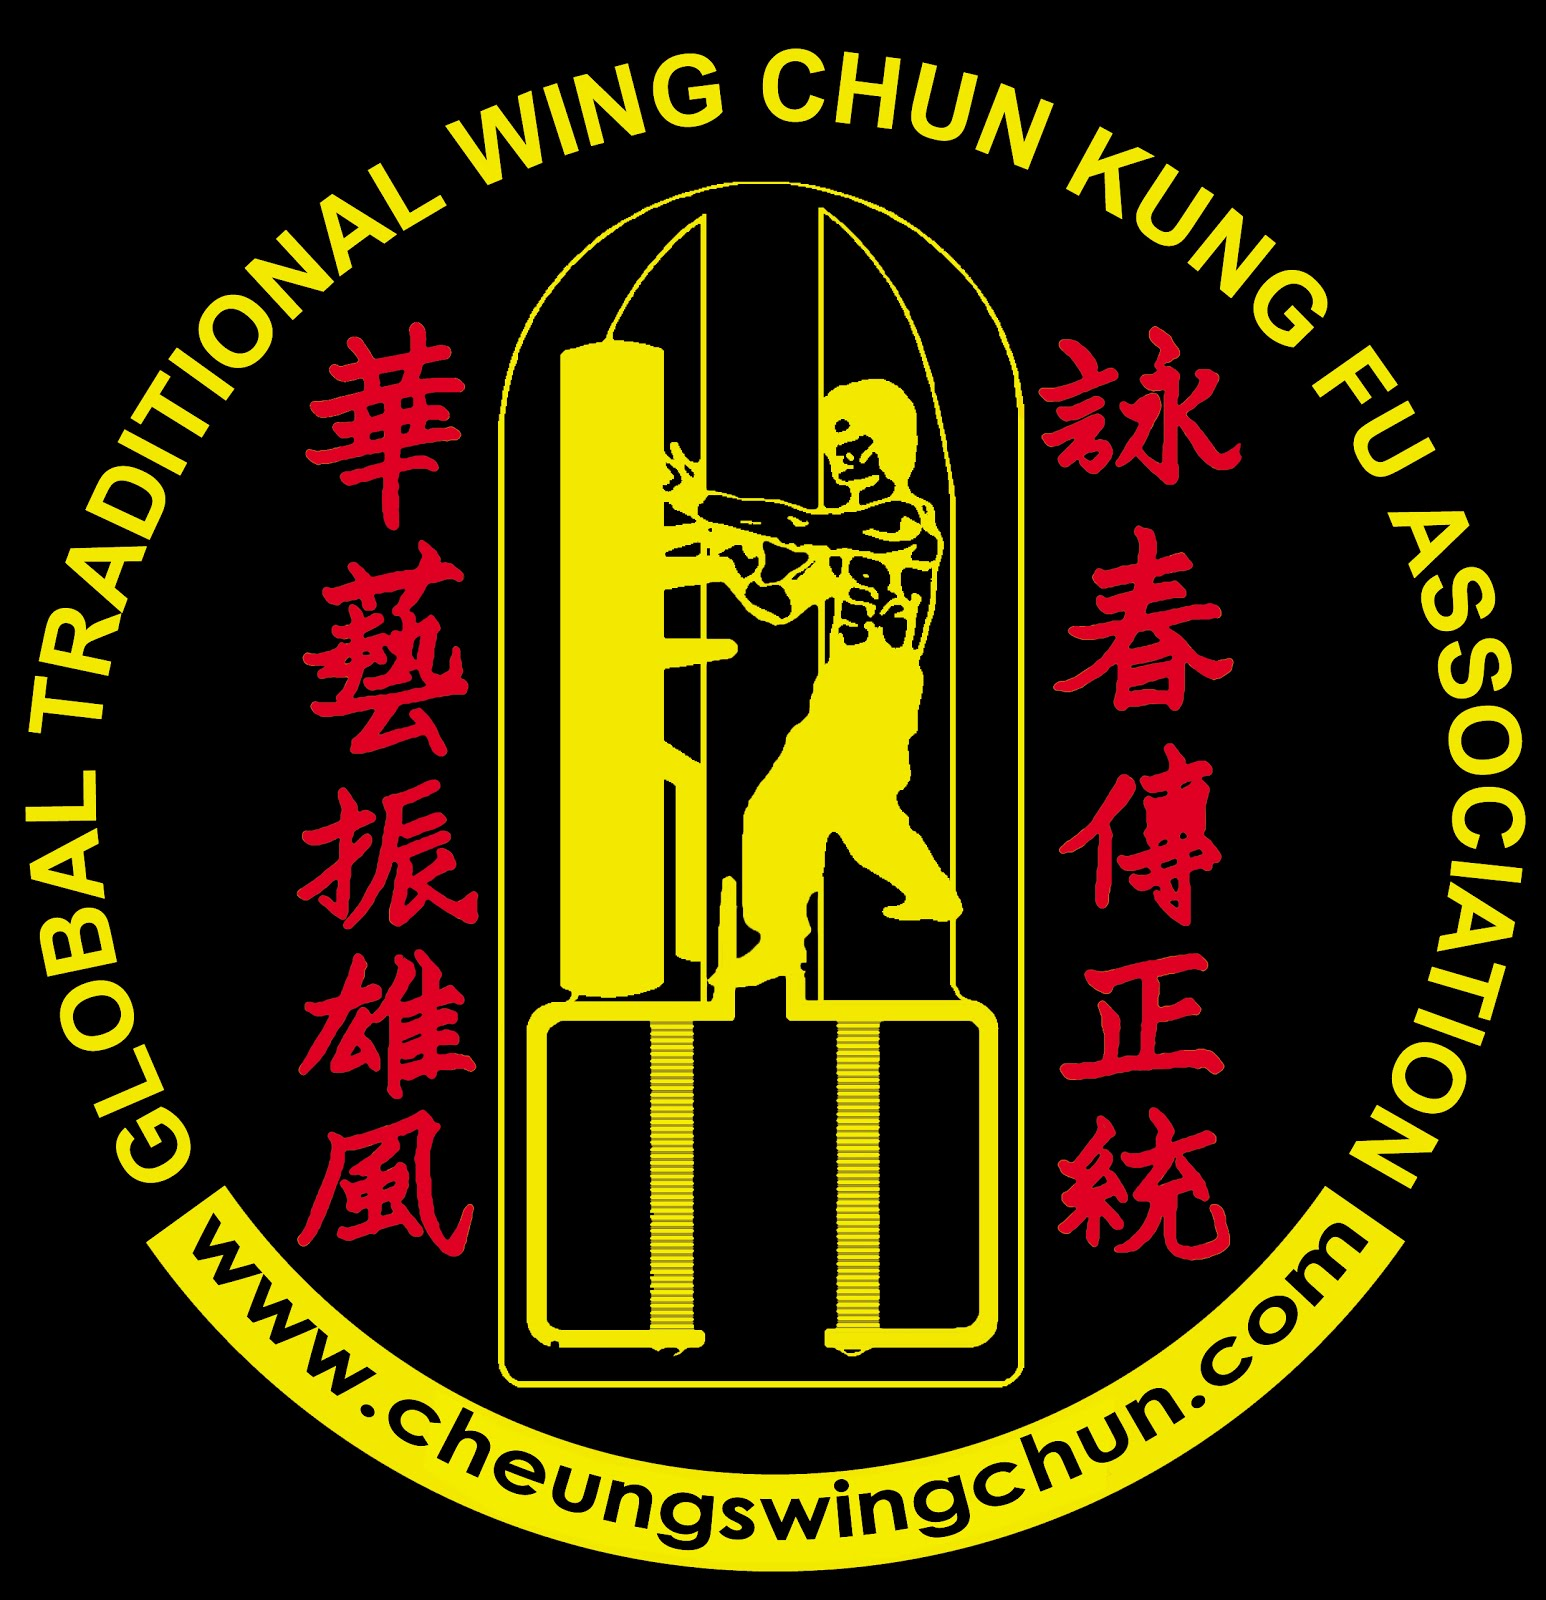 Link to the Official Global Traditional Wing Chun Kung Fu Association